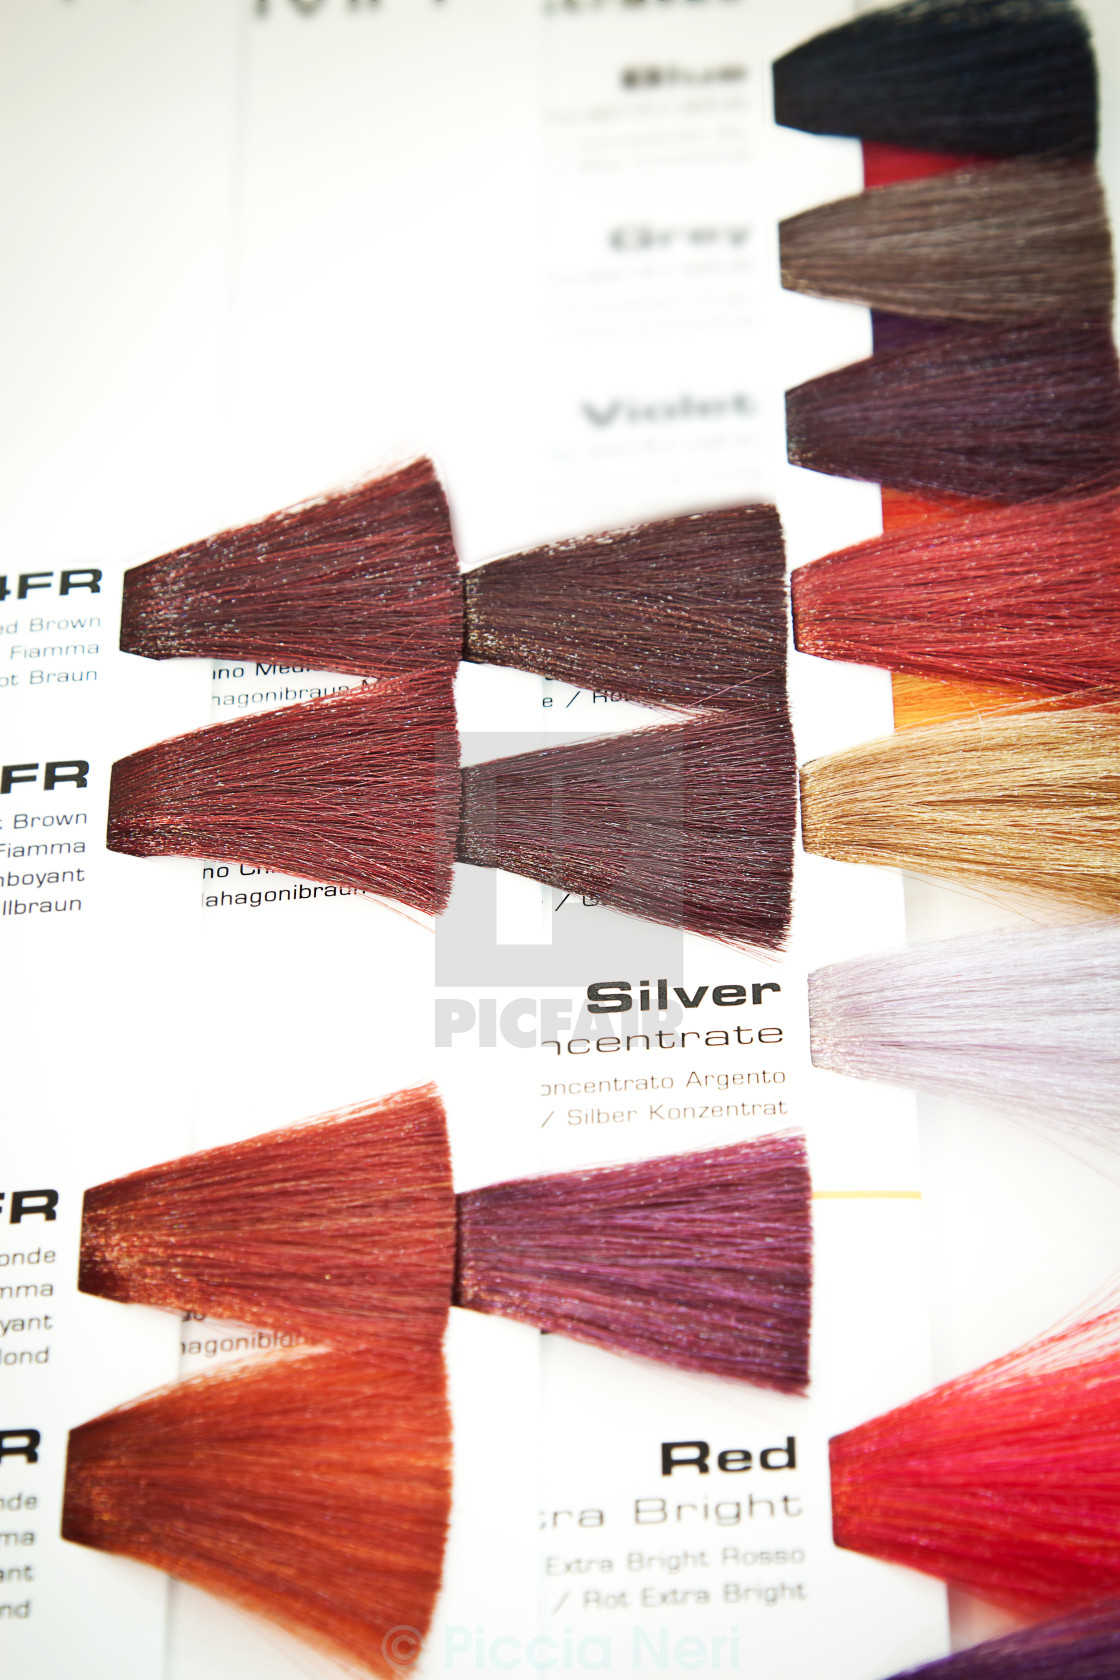 Hair dye colour swatch - License, download or print for ...